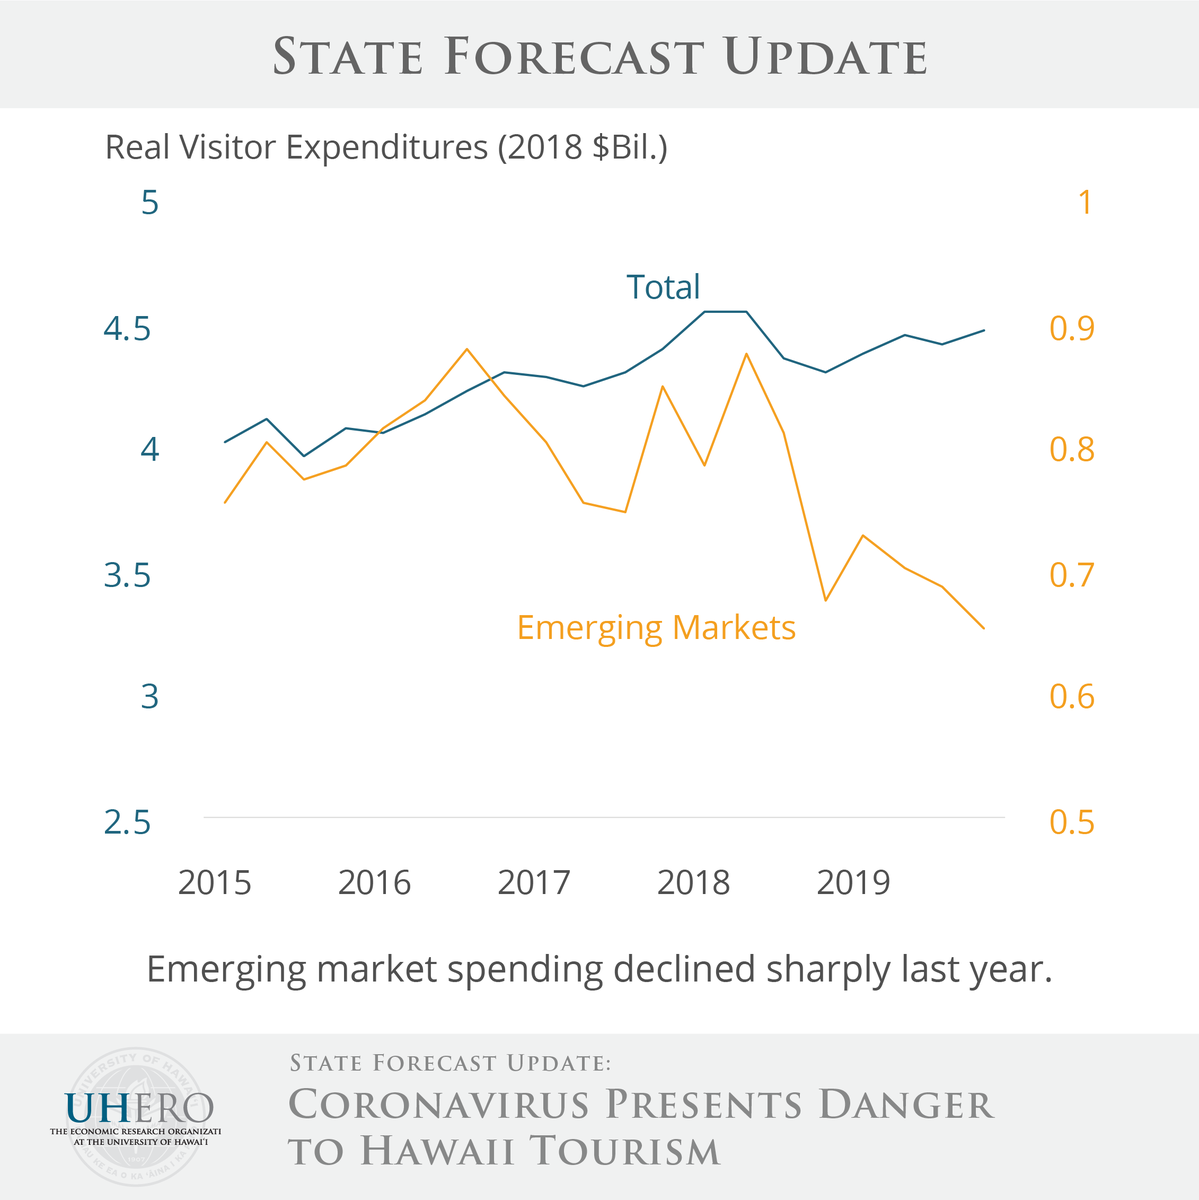 Emerging market spending declined sharply last year. Read more in the UHERO State Forecast Update: http://ow.ly/JQiO50yt6Hwpic.twitter.com/4upVoWOM4X